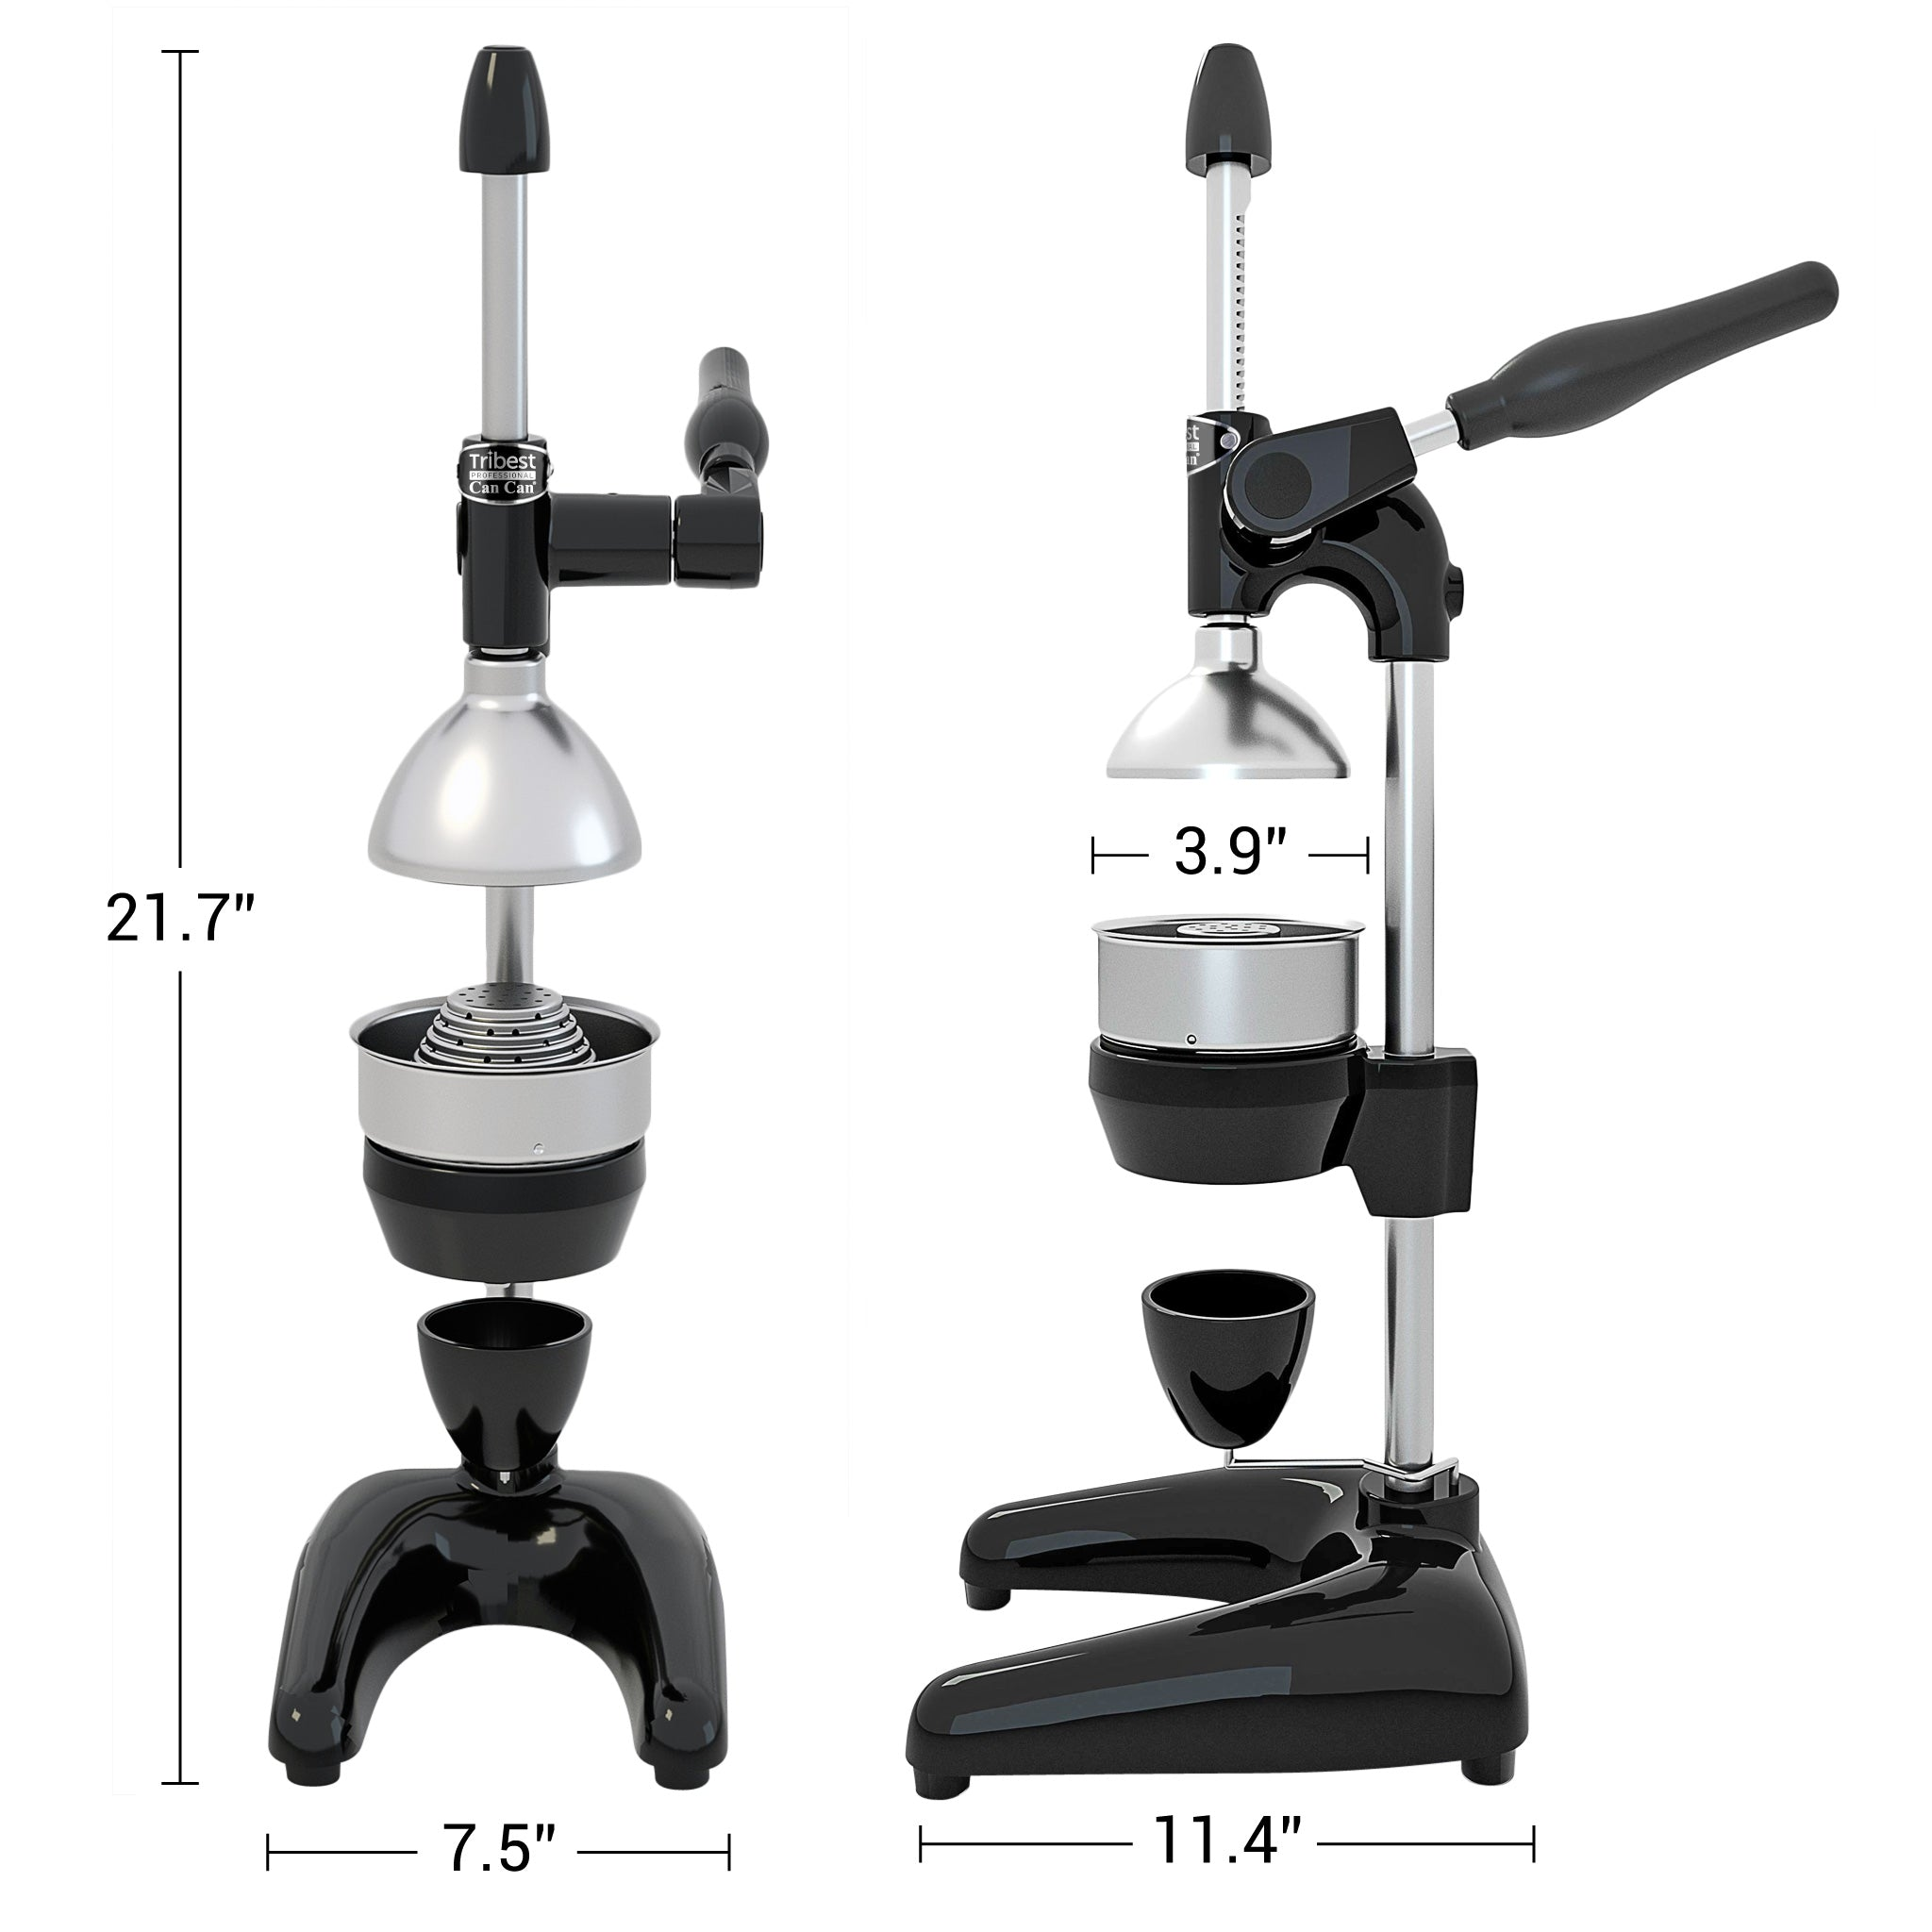 "Tribest Professional Cancan Manual Juice Press MJP-100 in Black 21.7"" x 7.5"" x 11.4"""